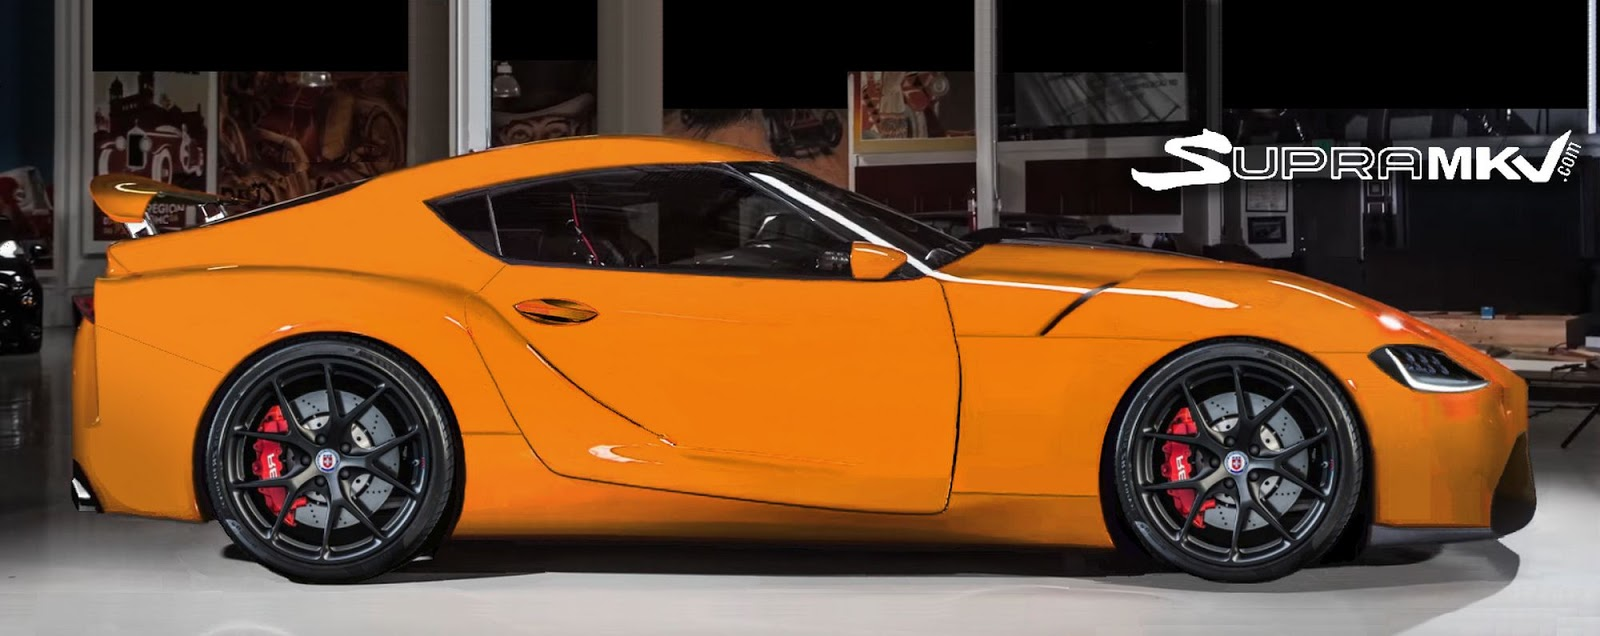 New Toyota Supra Shows Up In Side Profile Renderings - Yay ...